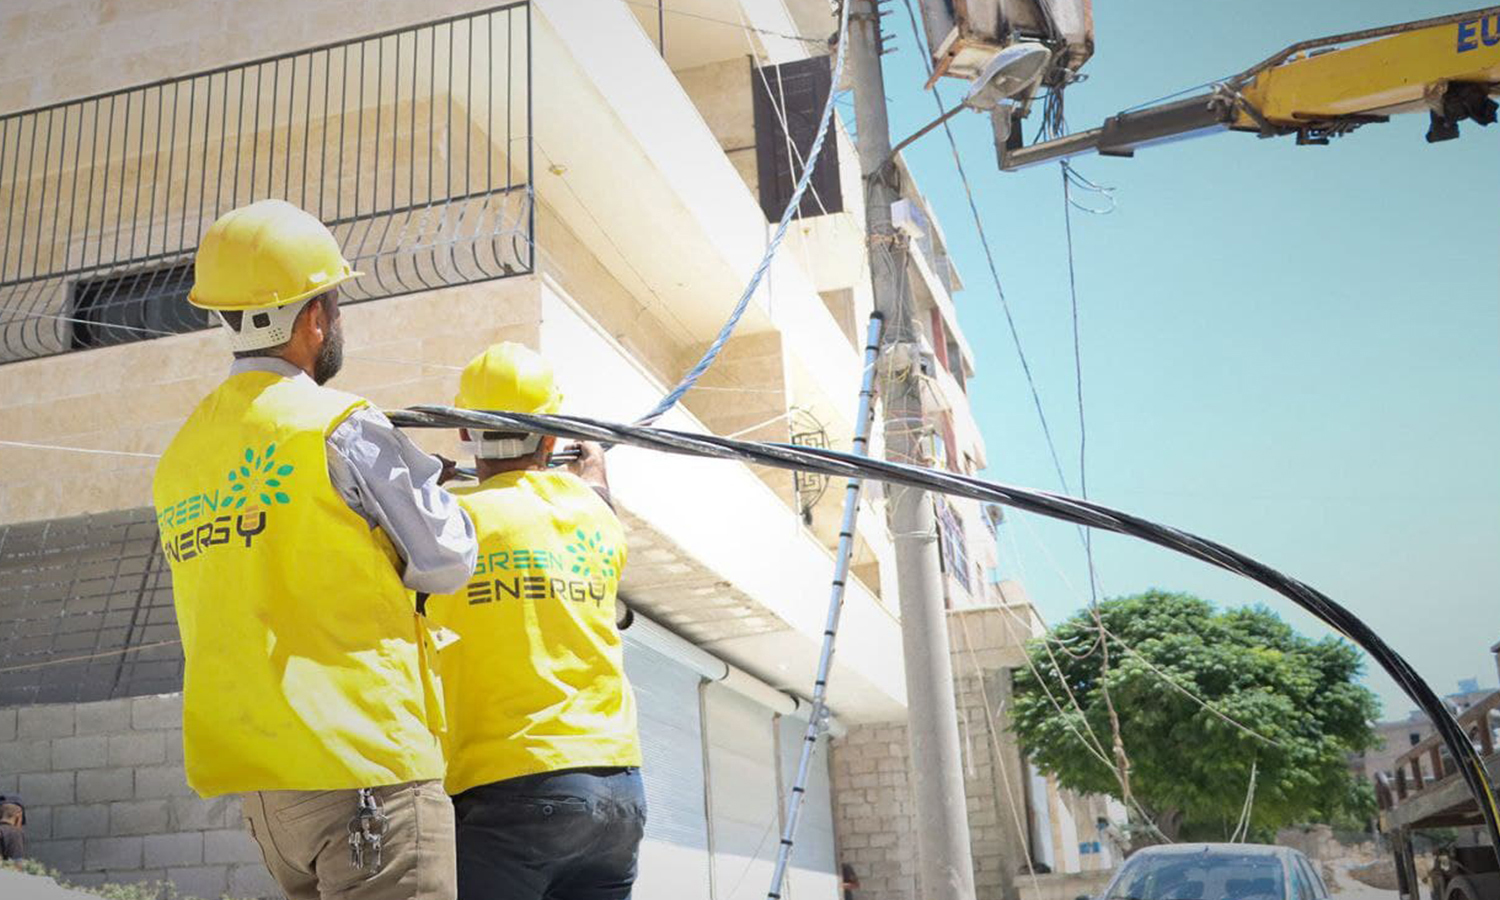 Green Energy workers connecting electrical networks in the city of Salqin, north of Idlib- 17 June 2021 (Green Energy)